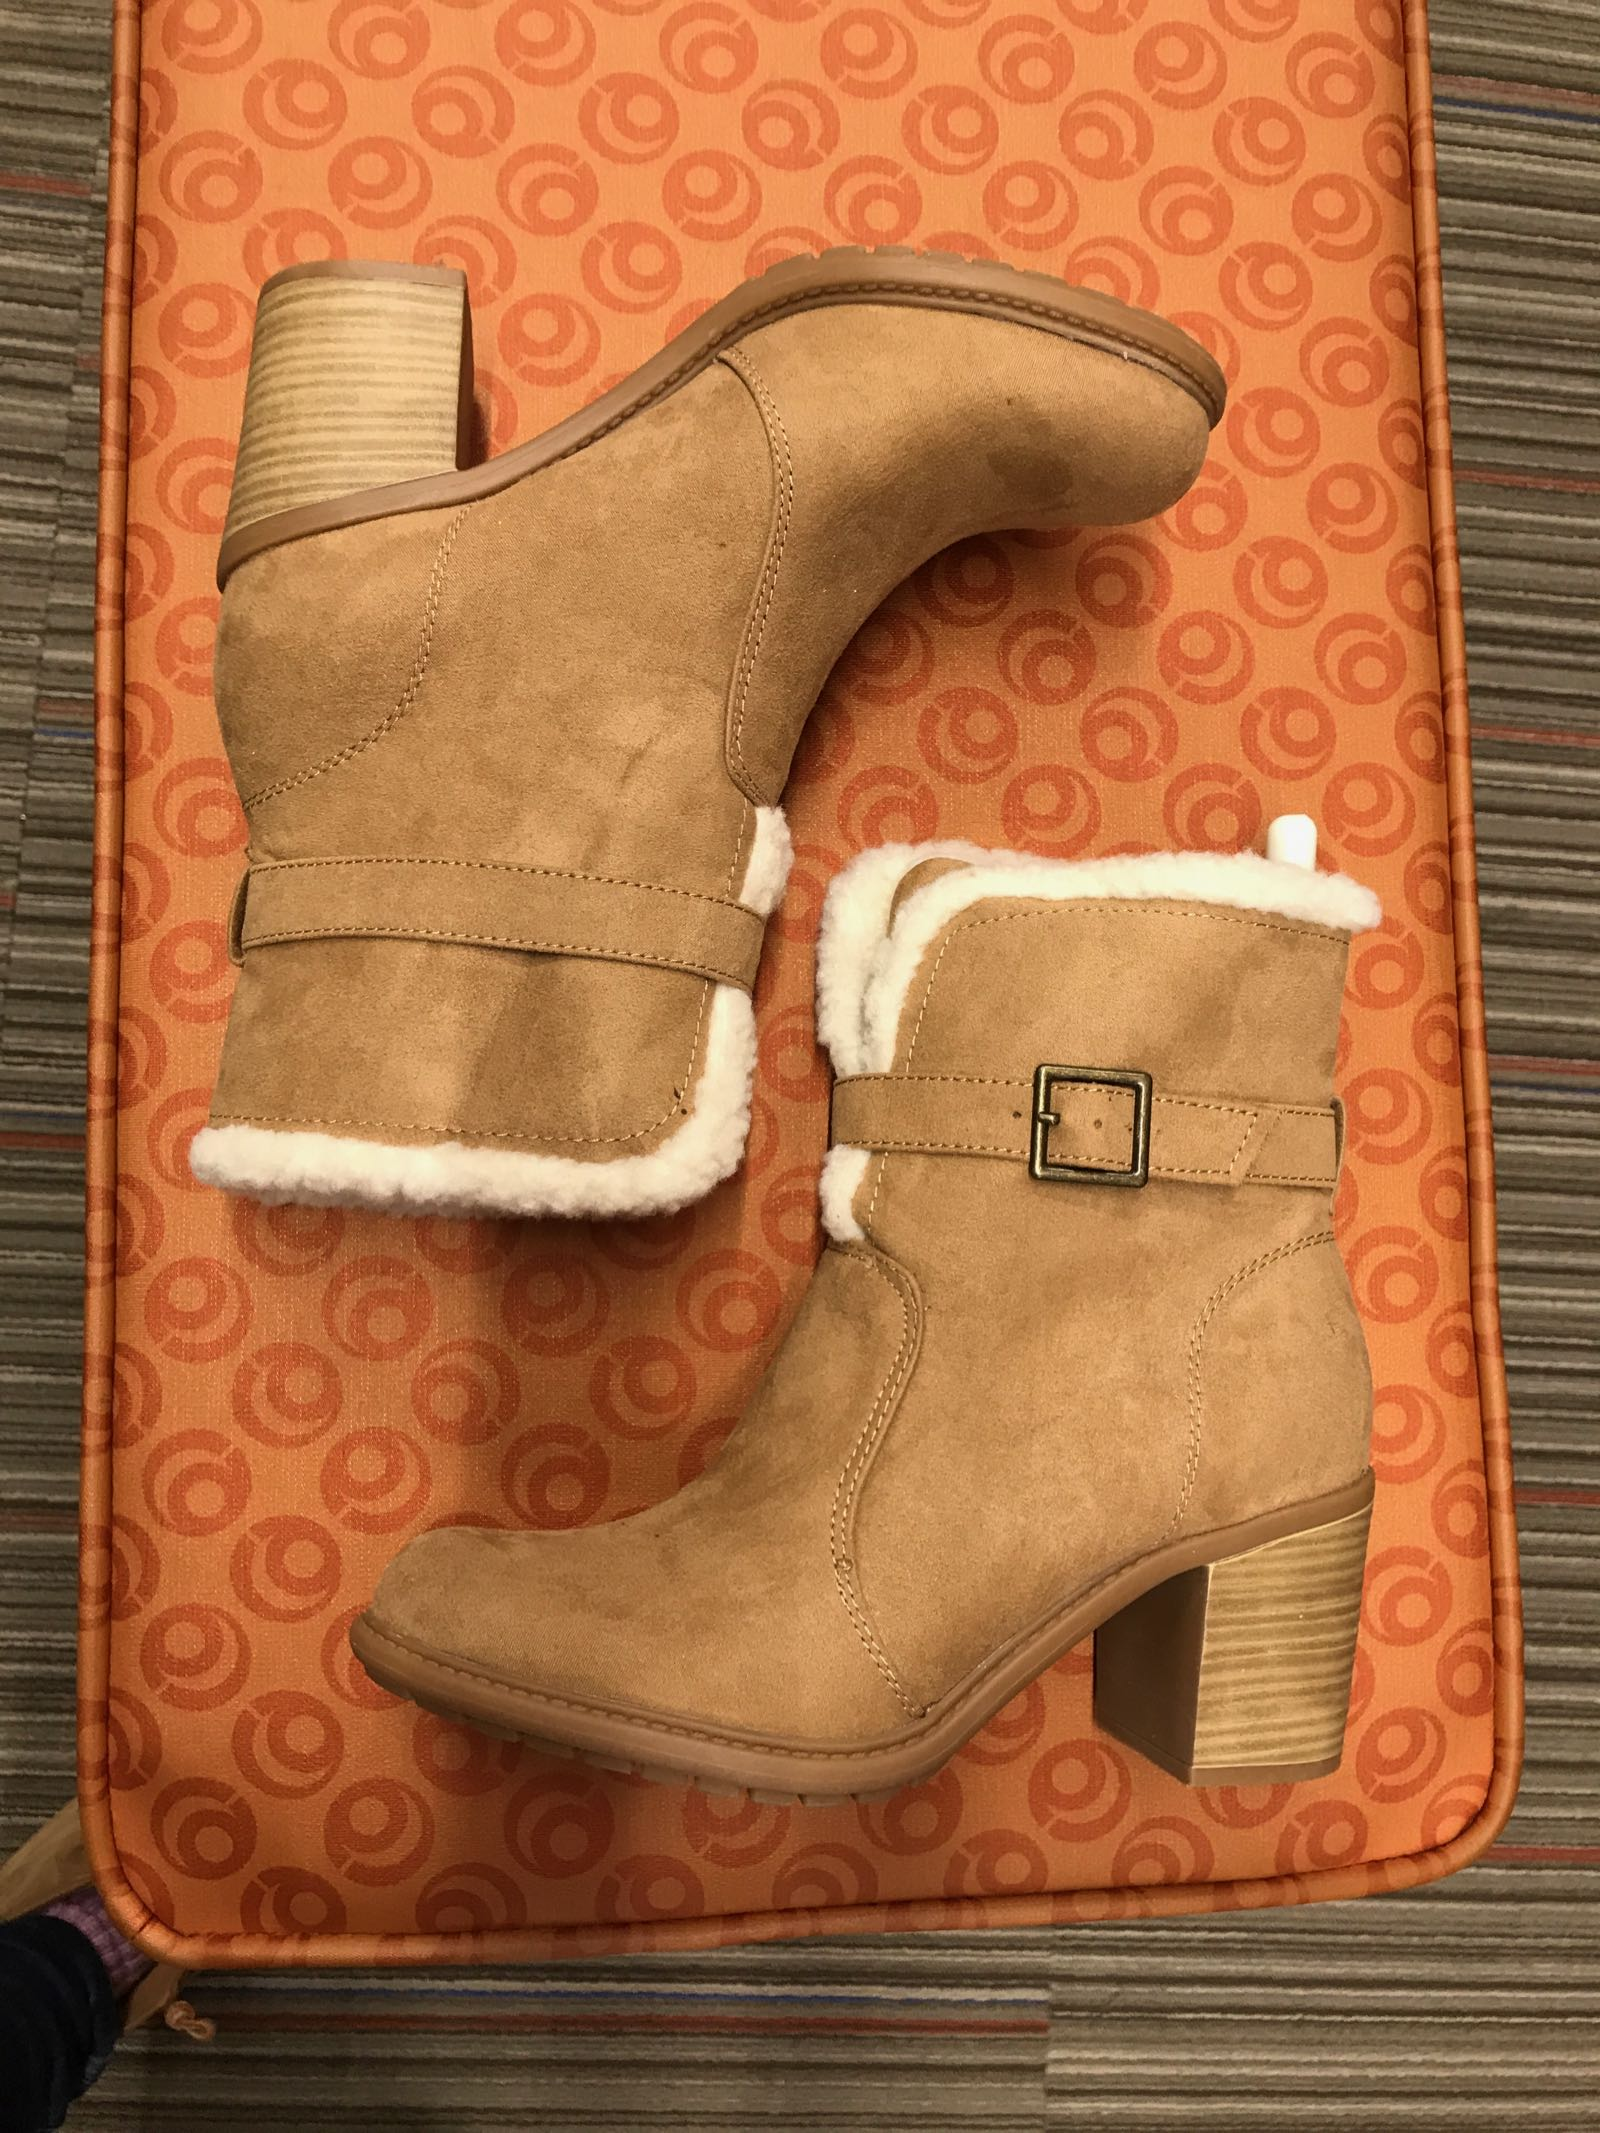 Payless has the cutest shoes and boots this winter!